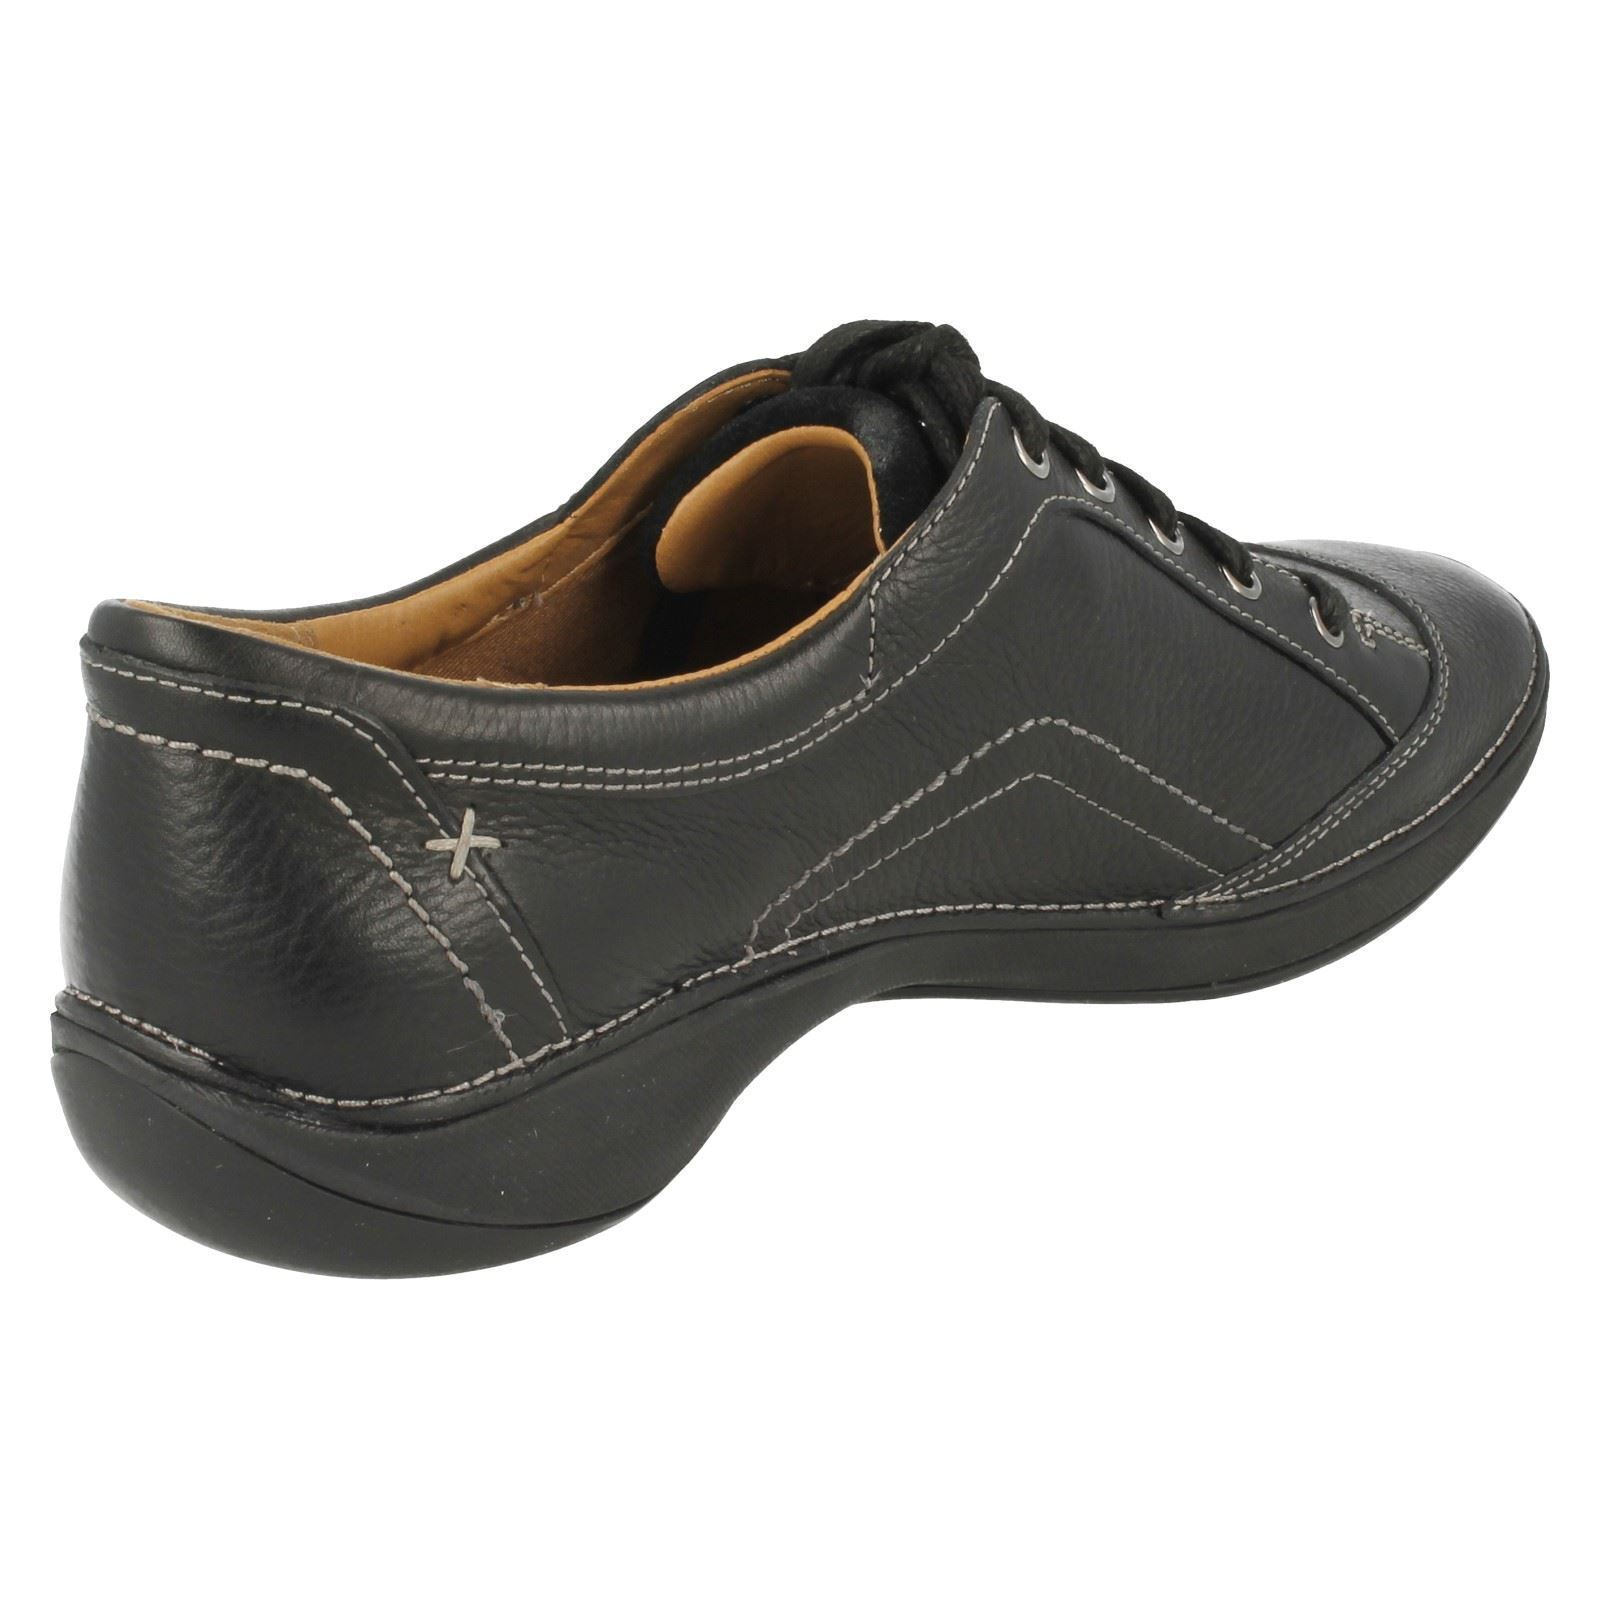 Ladies Fit Clarks Wide Fit Ladies Shoes 'Fairlie Spring' The Style ~ K 2f7a43